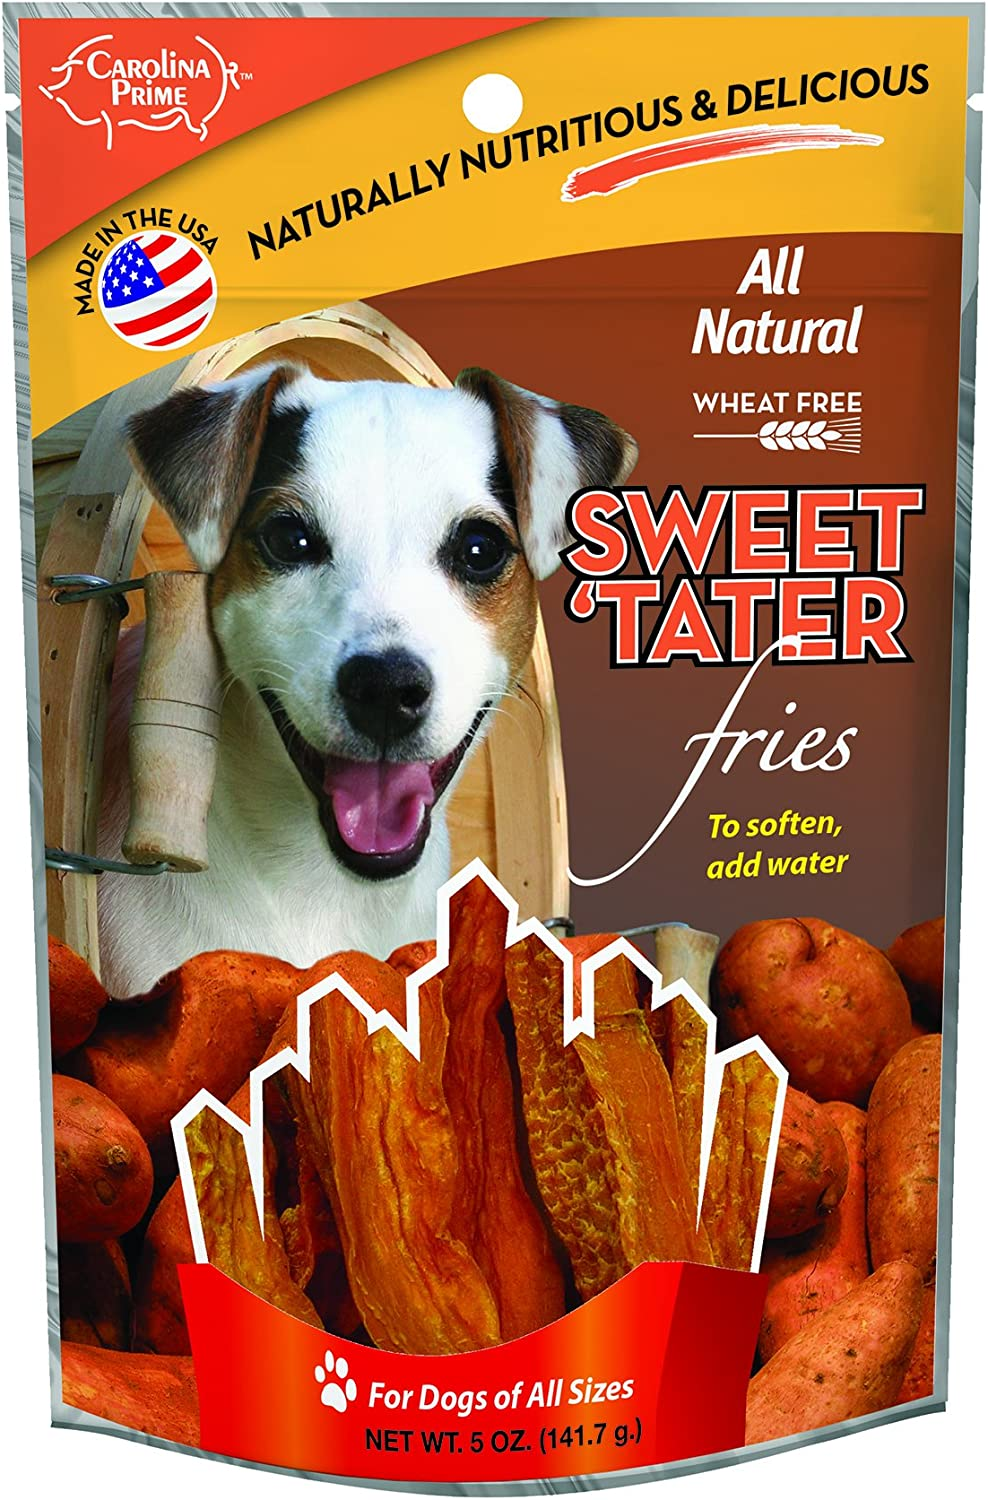 Carolina Prime Pet 45031 Sweet Tater Fries Treat for Dogs (1 Pouch), One Size